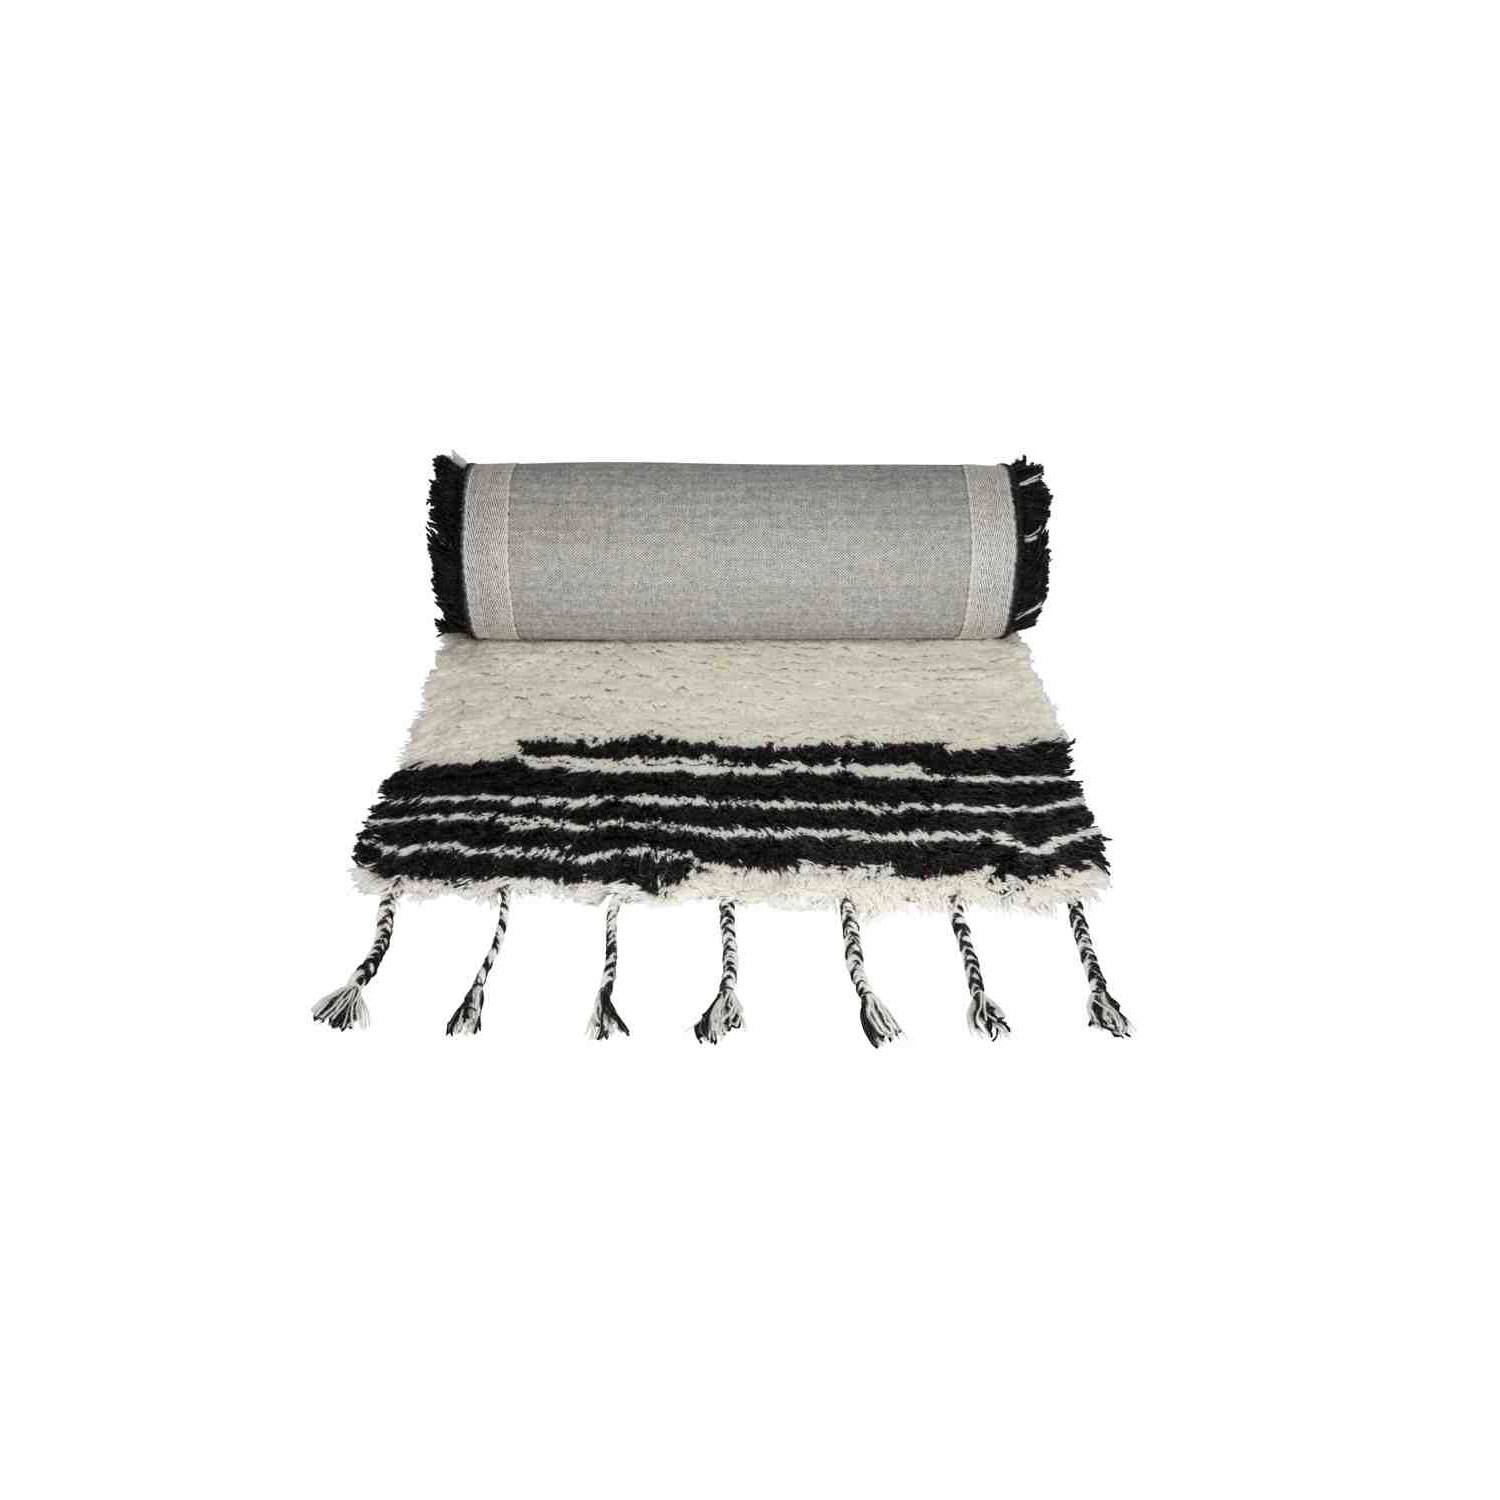 Day Home Day Tufted Runner Matto 60x250 cm